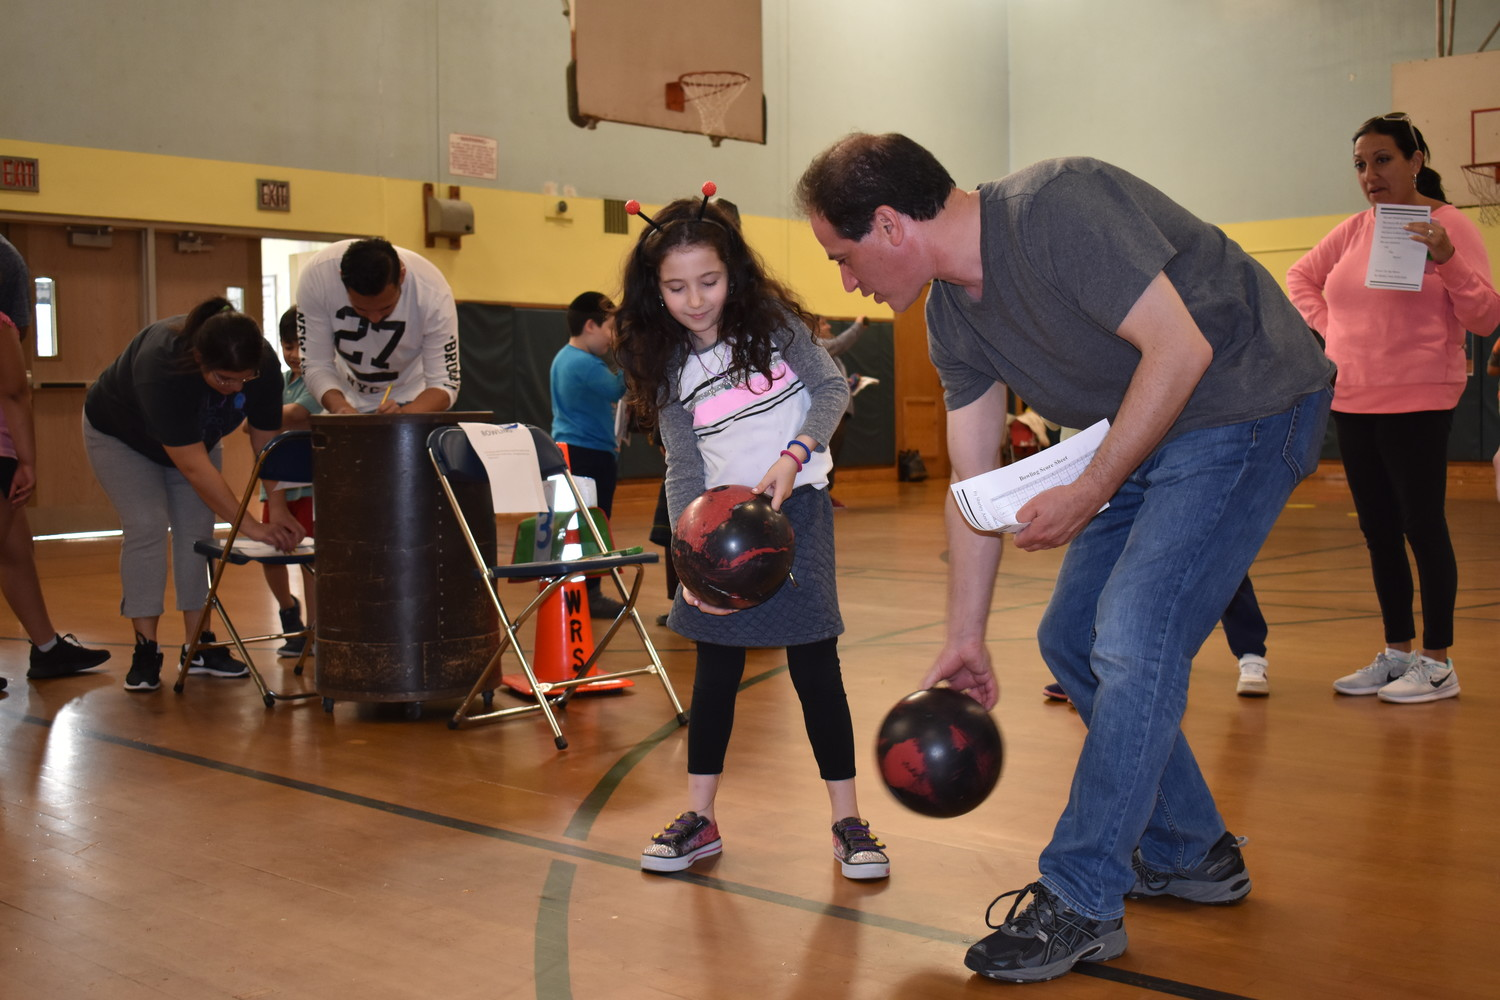 At Fun Family Fitness Night Lili Farber, 6, learned how to bowl from her father Sam.